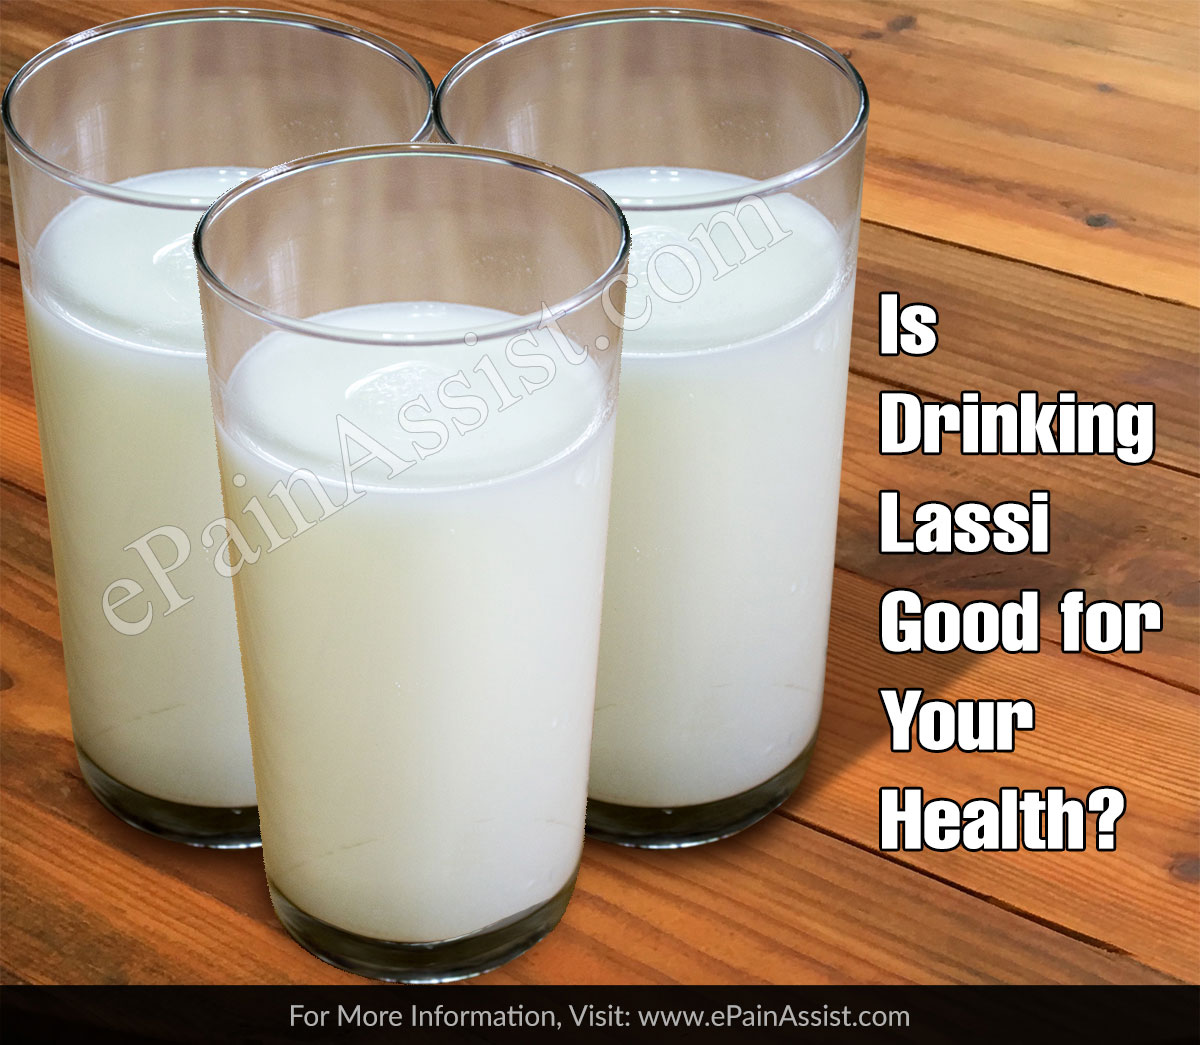 Is Drinking Lassi Good for Your Health?